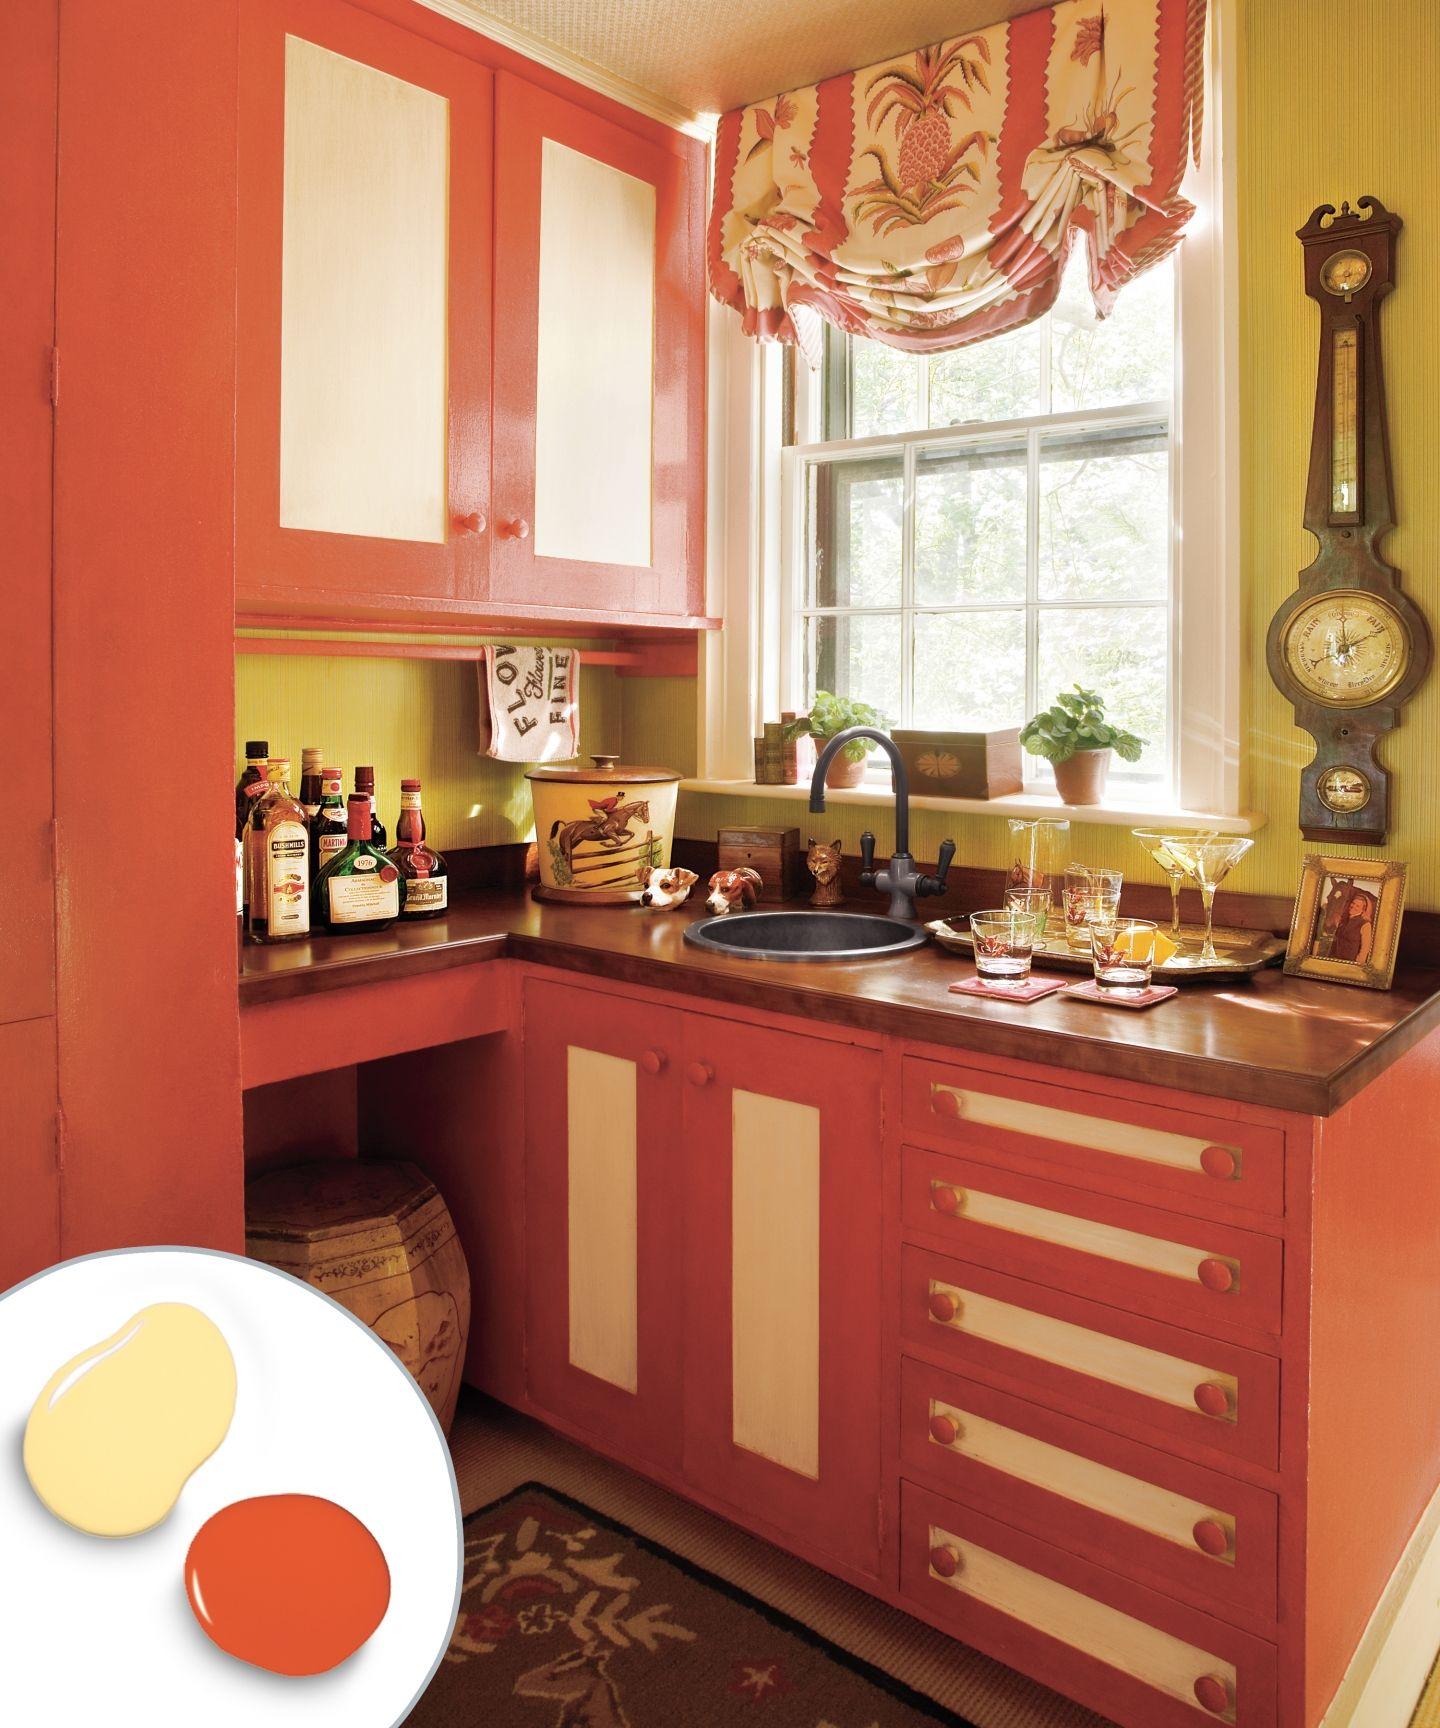 Colour Ideas For Kitchen Cupboards: 12 Kitchen Cabinet Color Combos That Really Cook